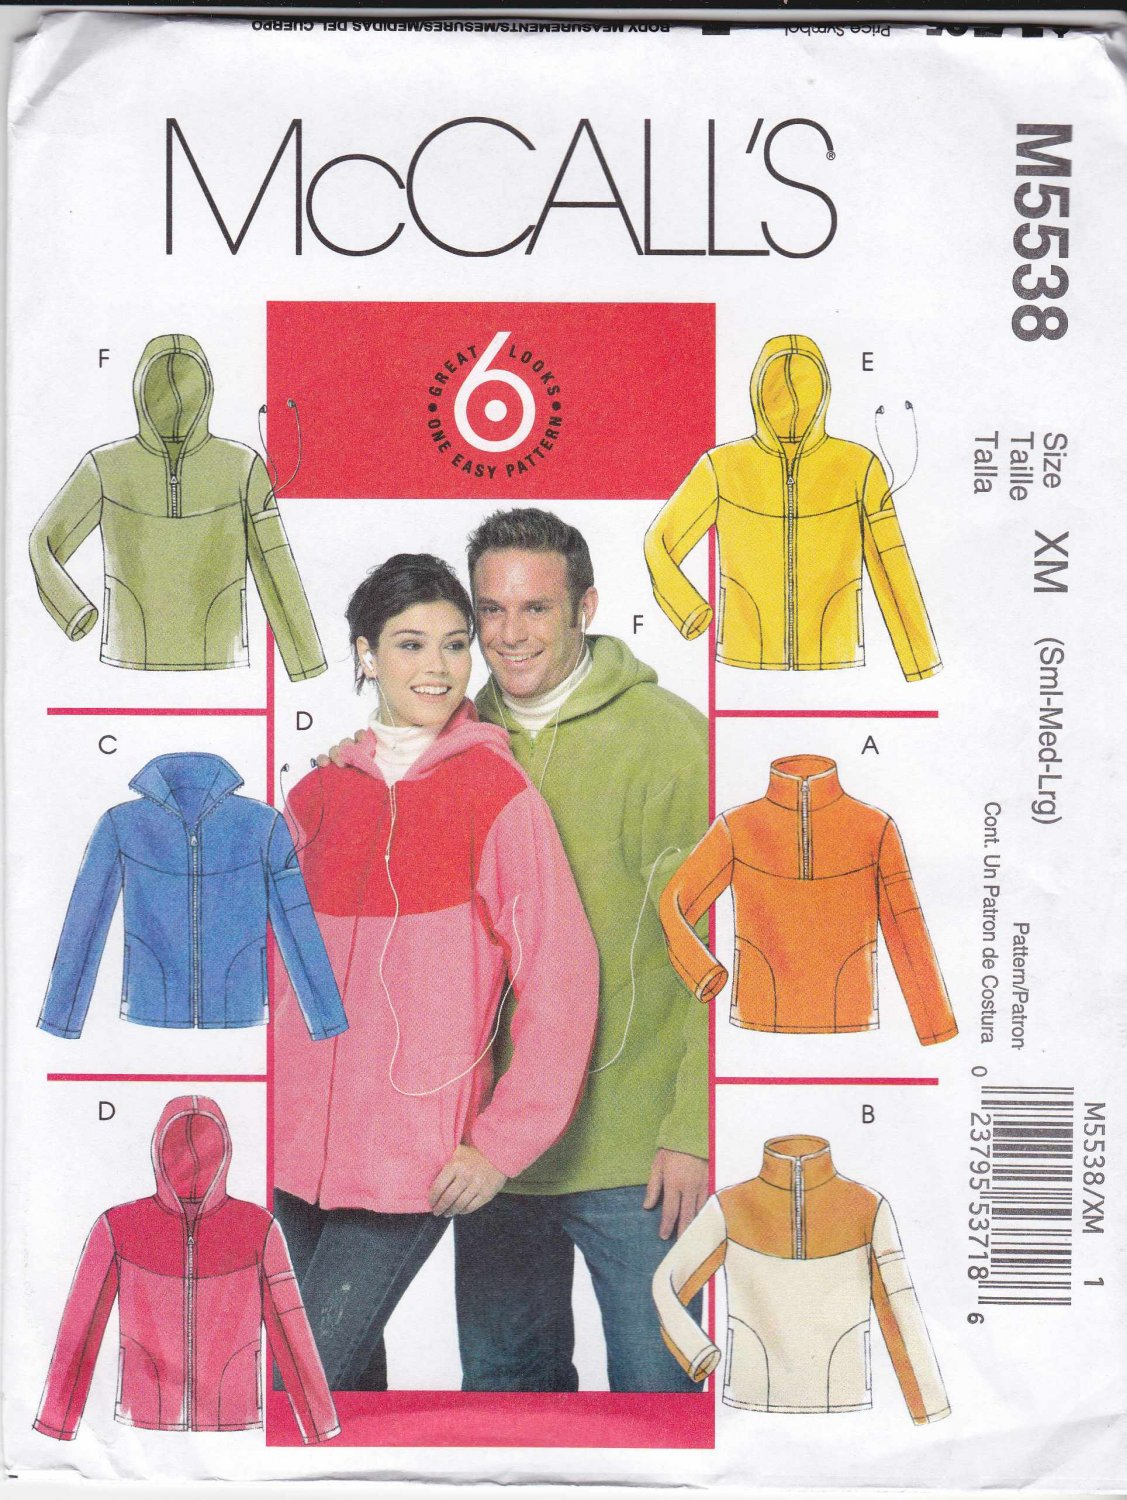 "McCall's Sewing Pattern 5538 M5538 Misses Mens Chest Size 34 44"" Easy Pullover Zipper Front Jacket"